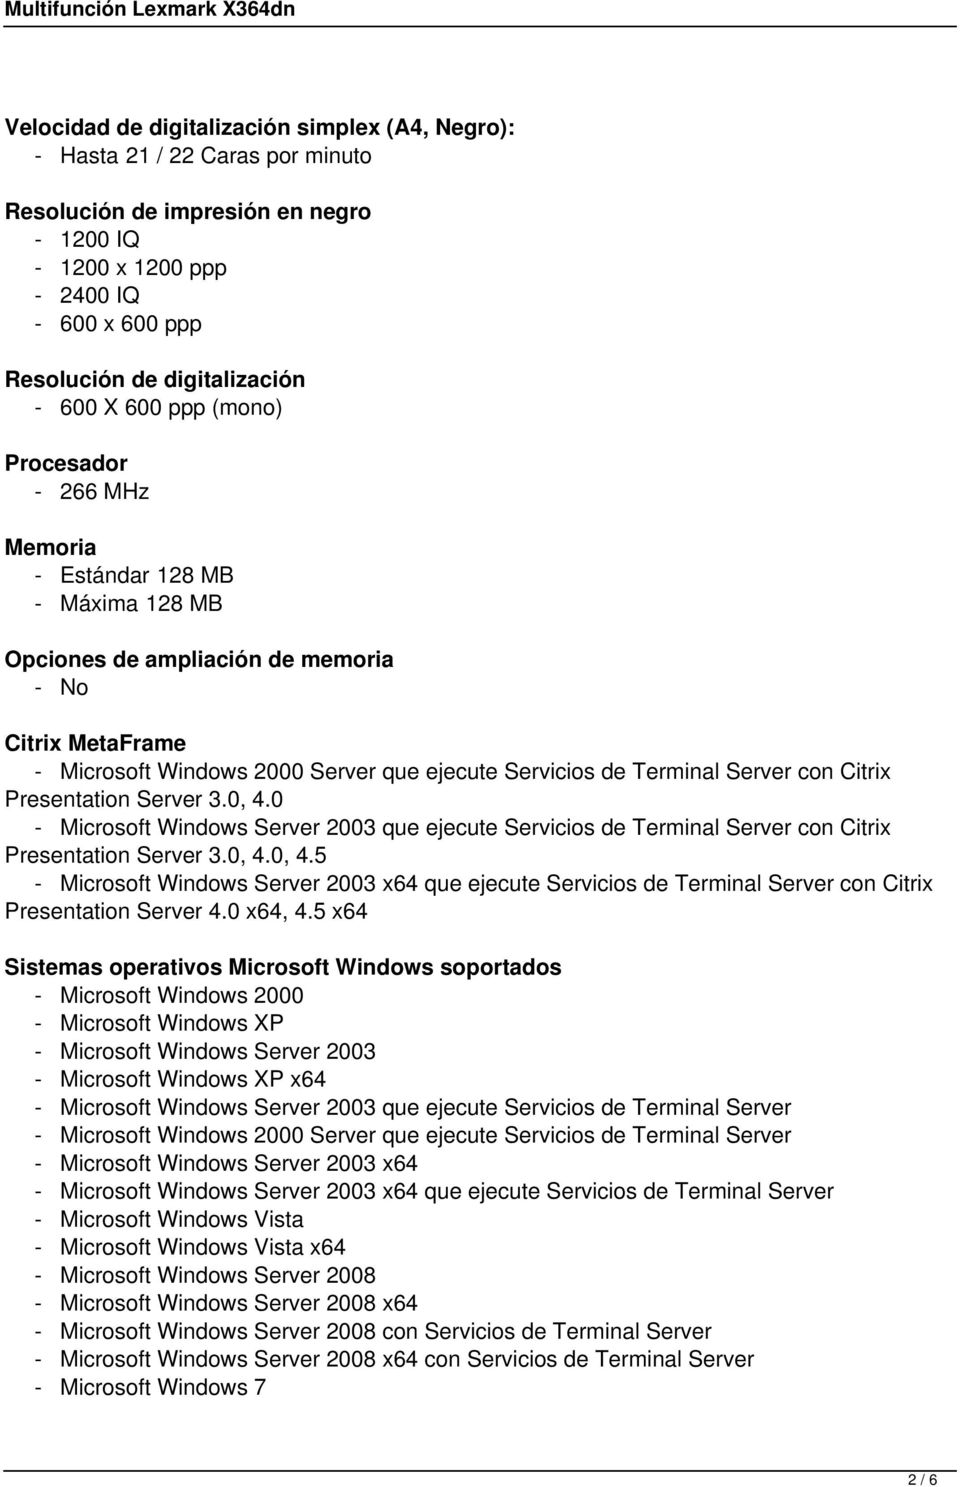 Terminal Server con Citrix Presentation Server 3.0, 4.0 - Microsoft Windows Server 2003 que ejecute Servicios de Terminal Server con Citrix Presentation Server 3.0, 4.0, 4.5 - Microsoft Windows Server 2003 x64 que ejecute Servicios de Terminal Server con Citrix Presentation Server 4.